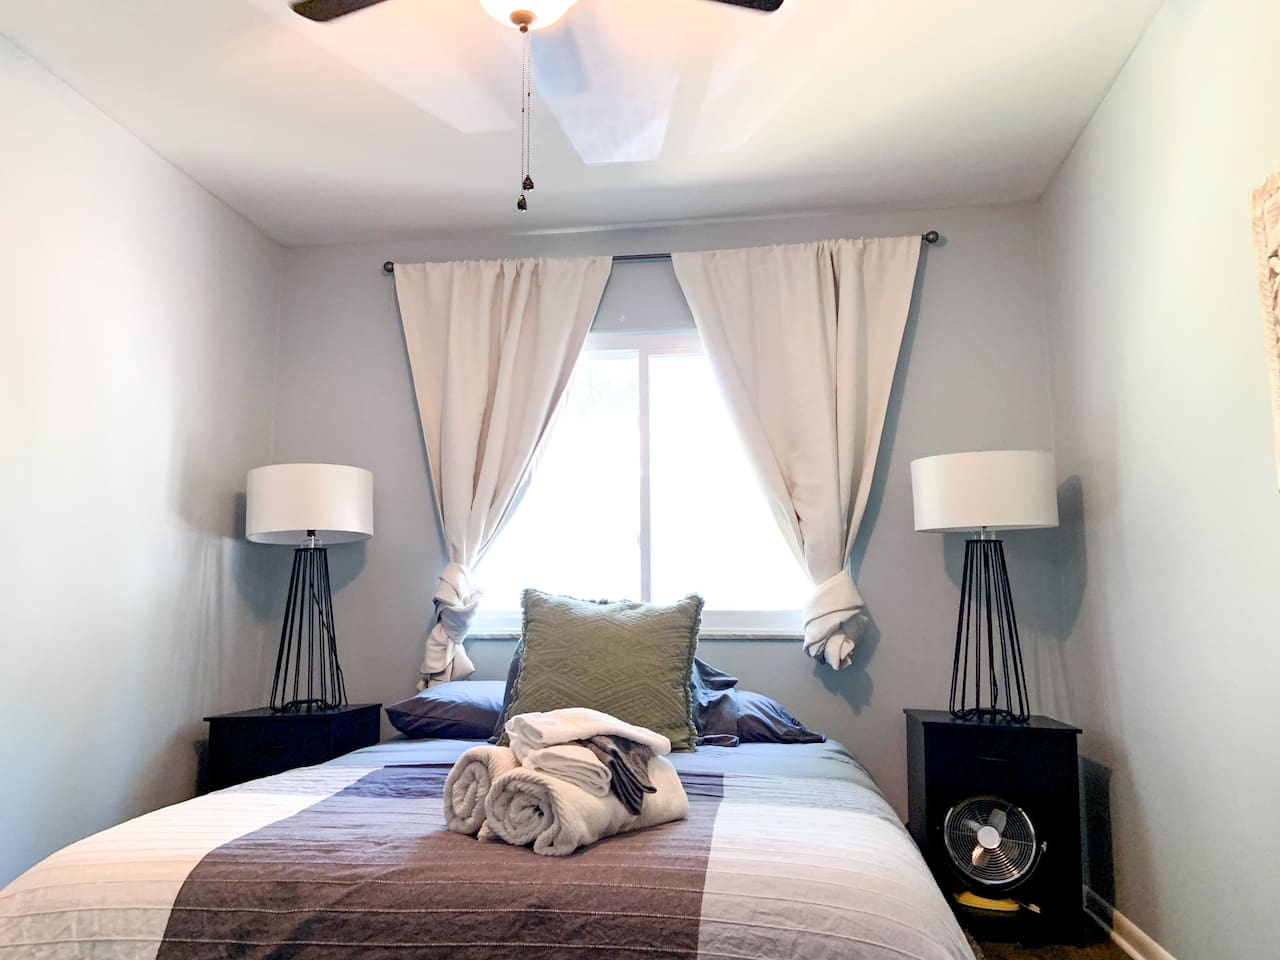 The rear unit's bedroom also features new blackout drapes for an extra hour of sleep! In addition, big, beautiful lights provide all the light you'll need for when the shades are closed. Ultra-comfy foam mattresses and fresh, clean duvets await!